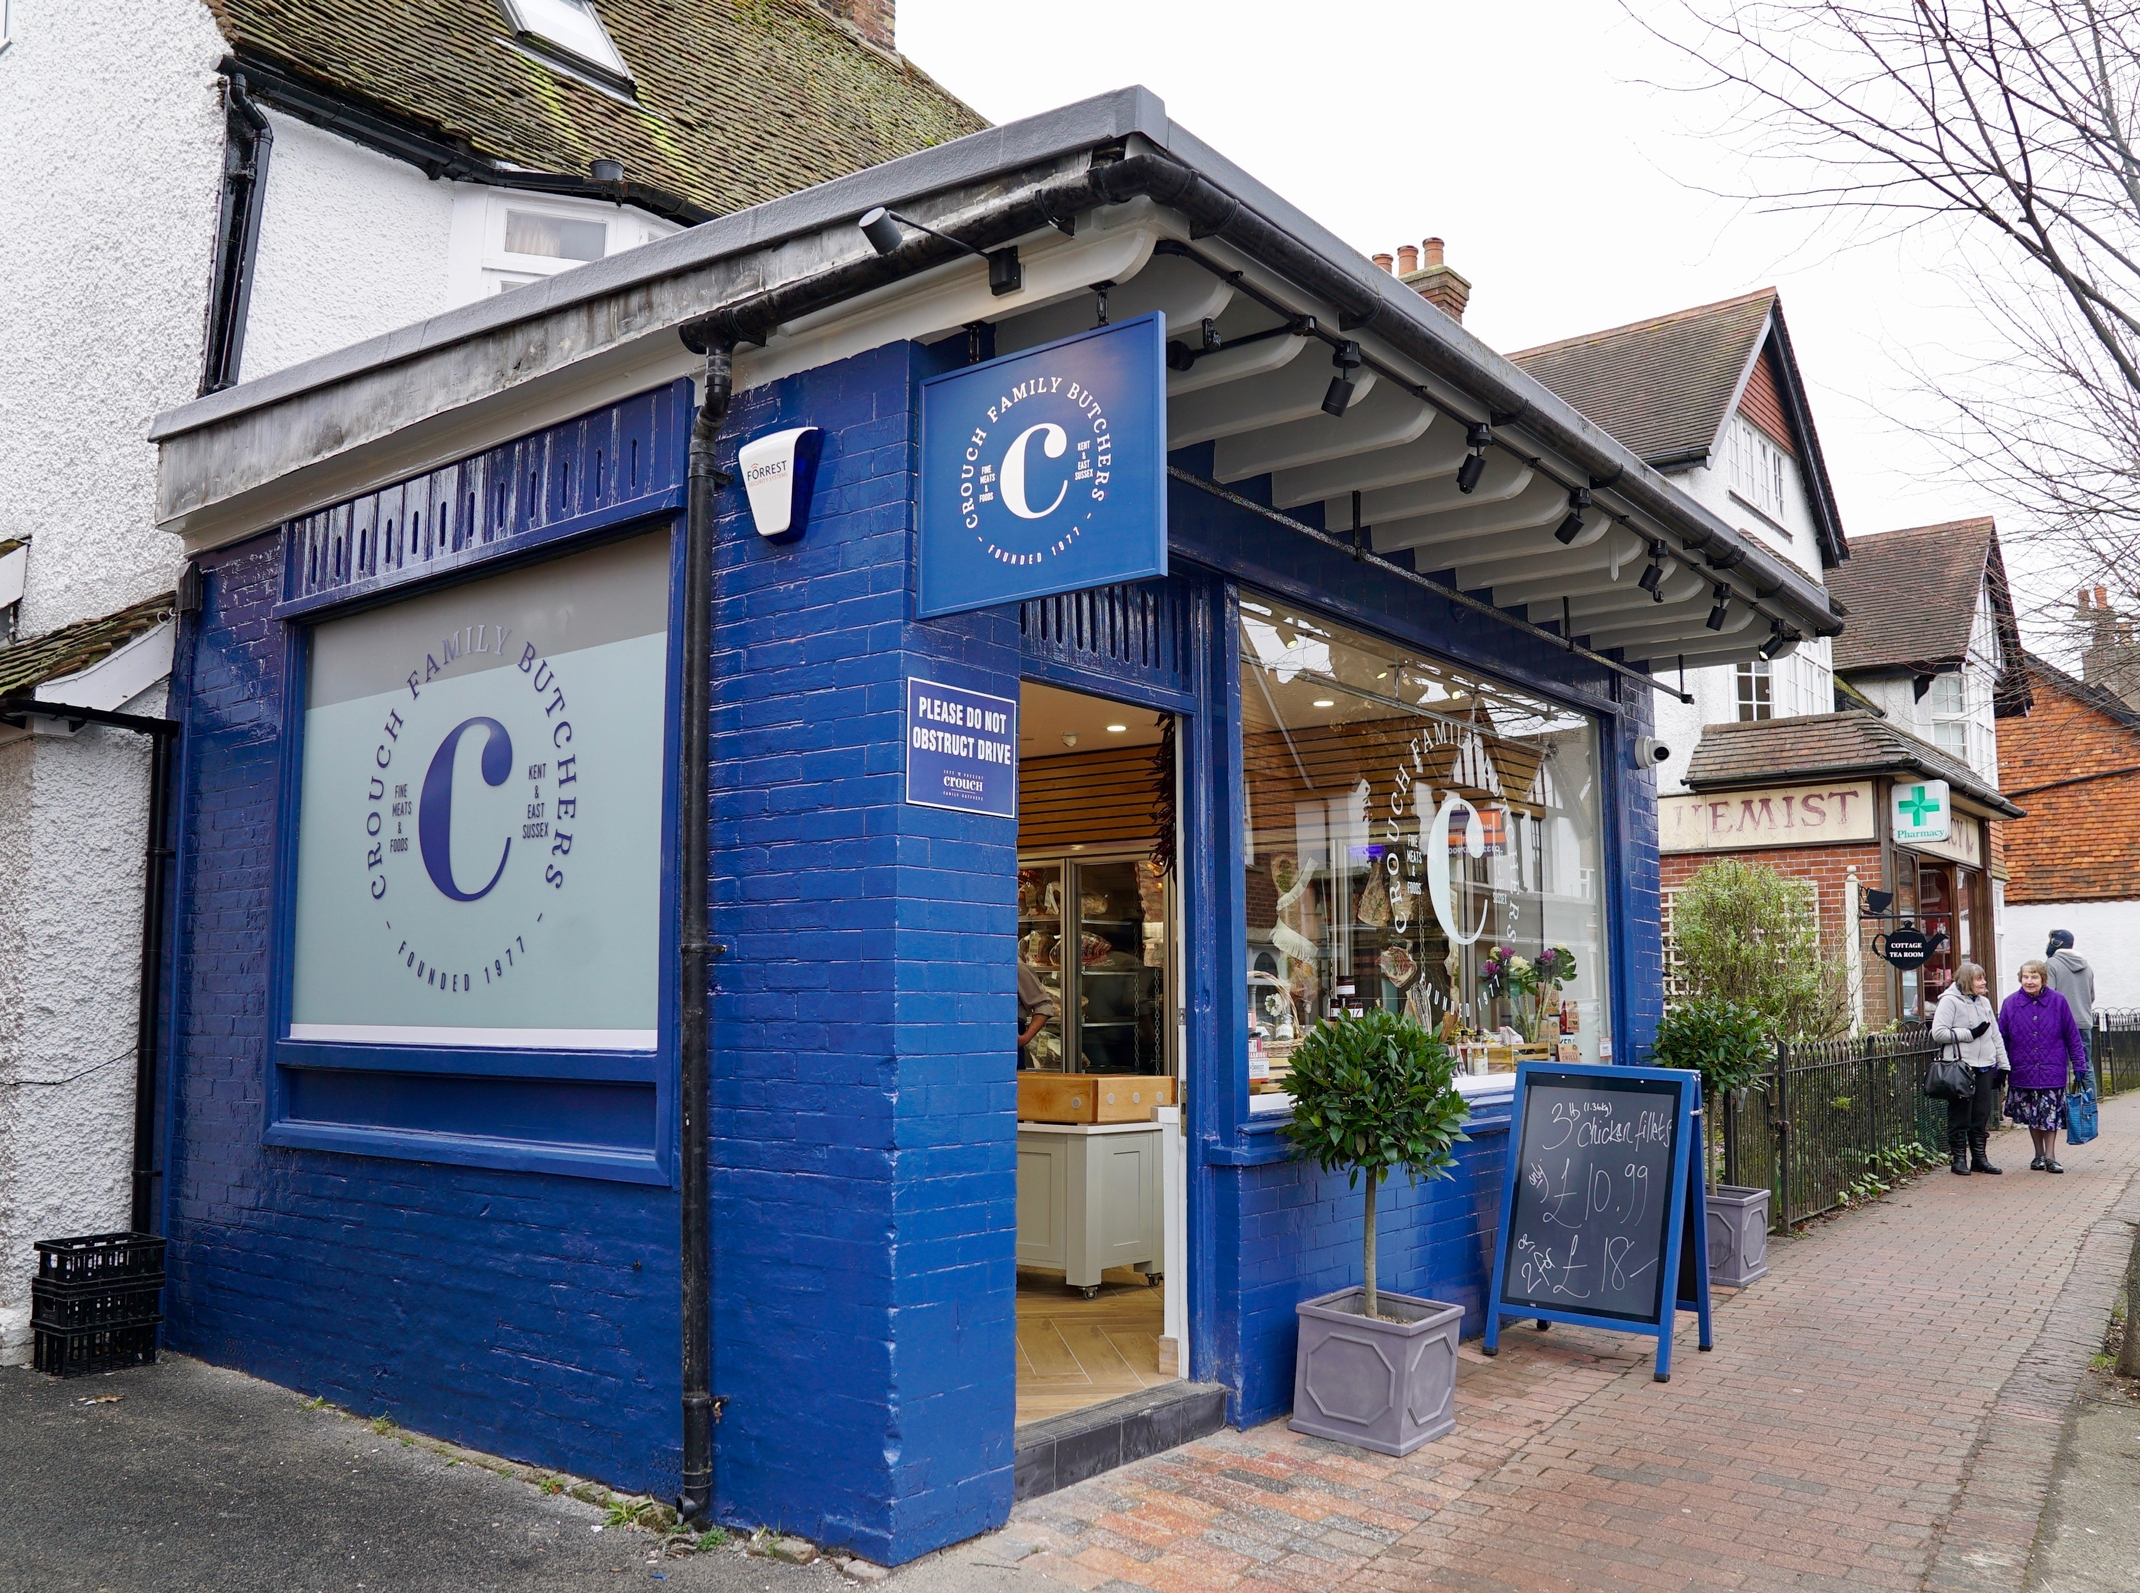 Crouch independent butchers in Wadhurst, Kent